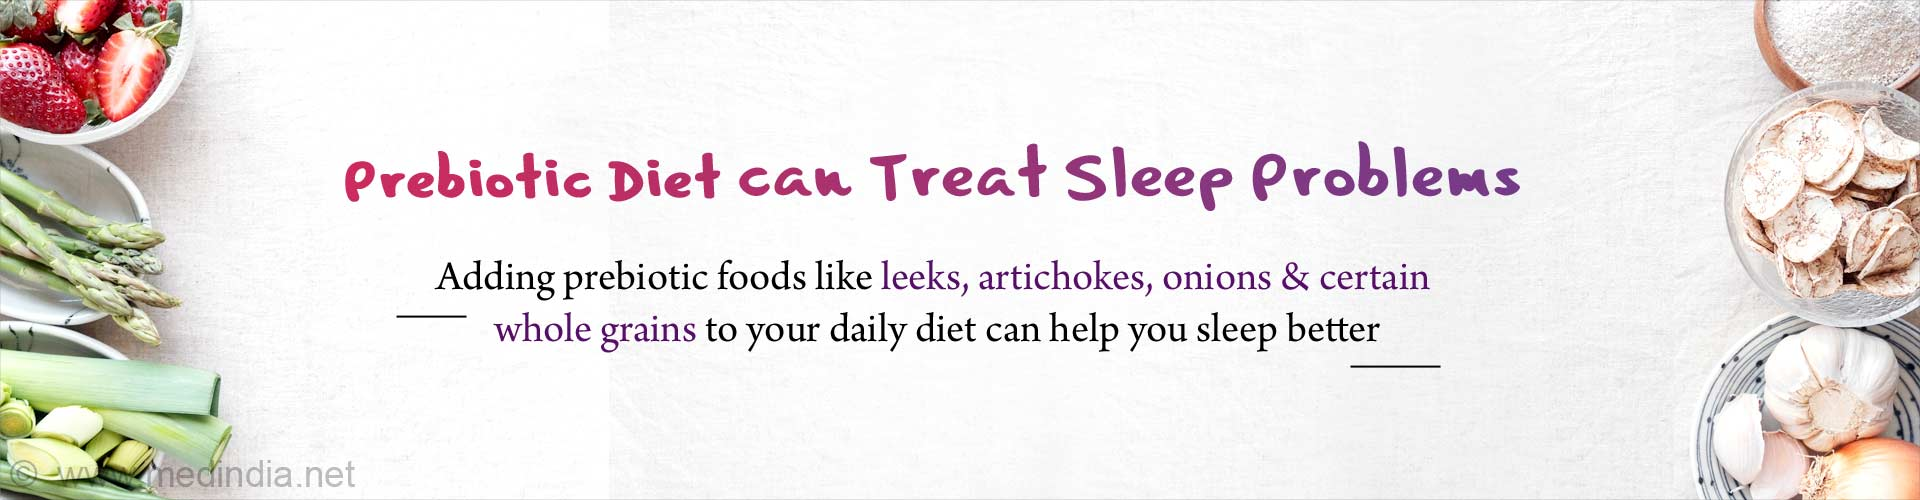 Beat Insomnia: Prebiotics can Help Fight against Sleep Problems